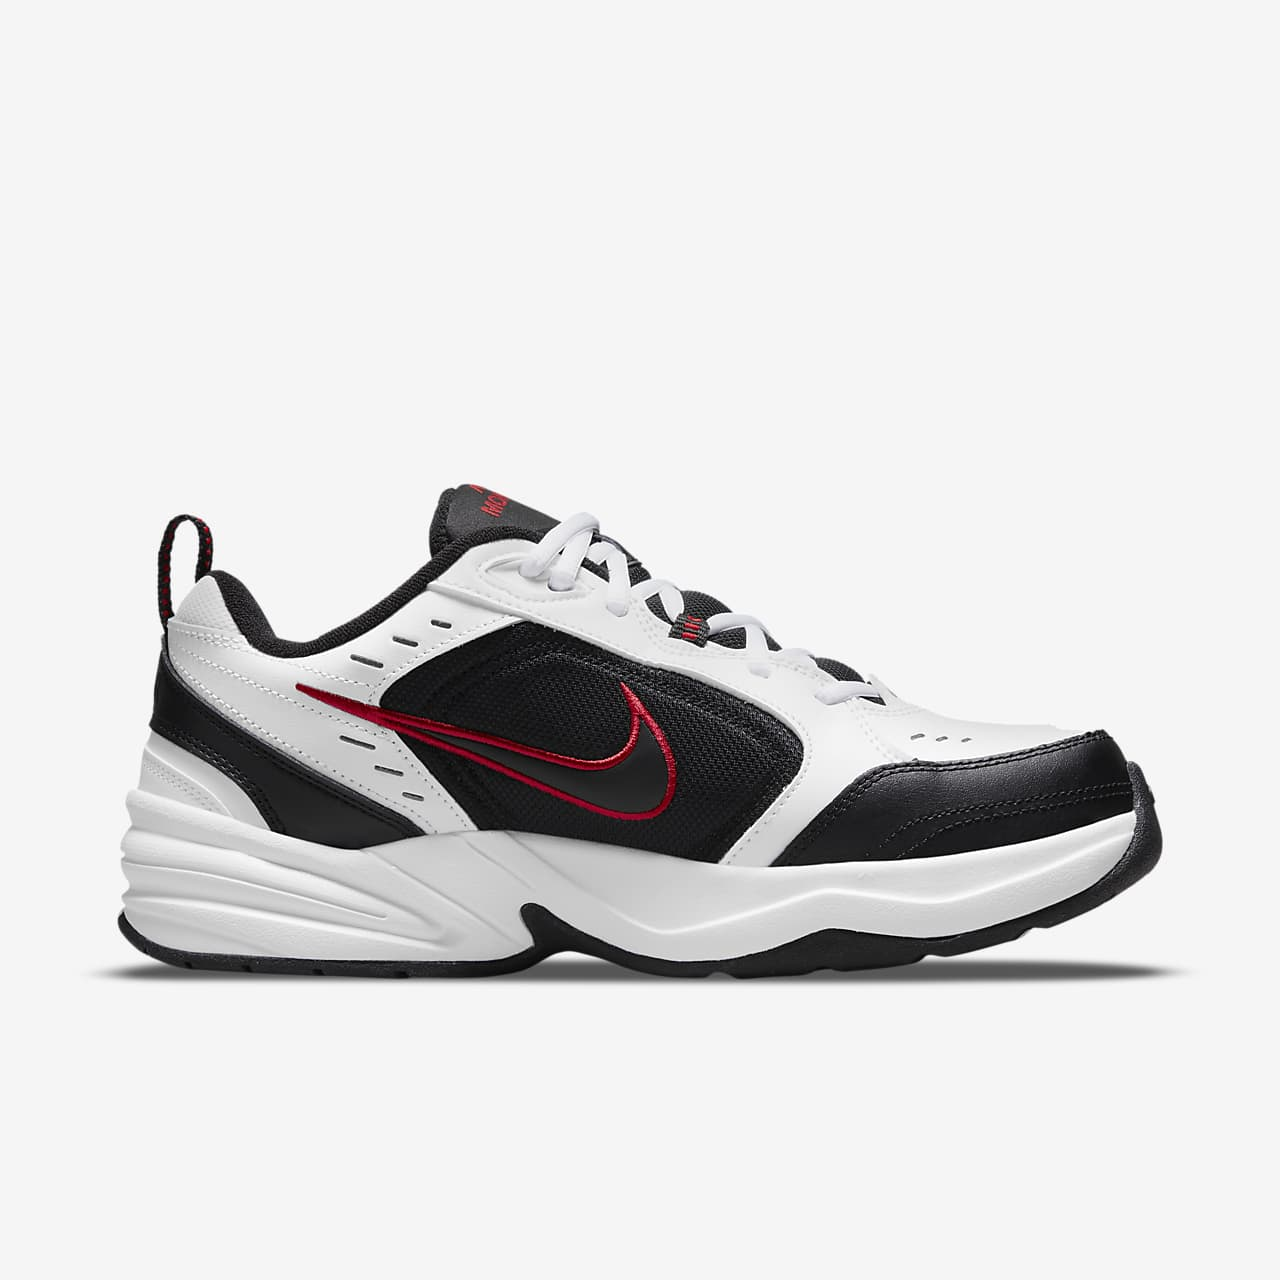 50% price 100% satisfaction guarantee size 40 Nike Air Monarch IV (Extra Wide) Lifestyle/Gym Shoe